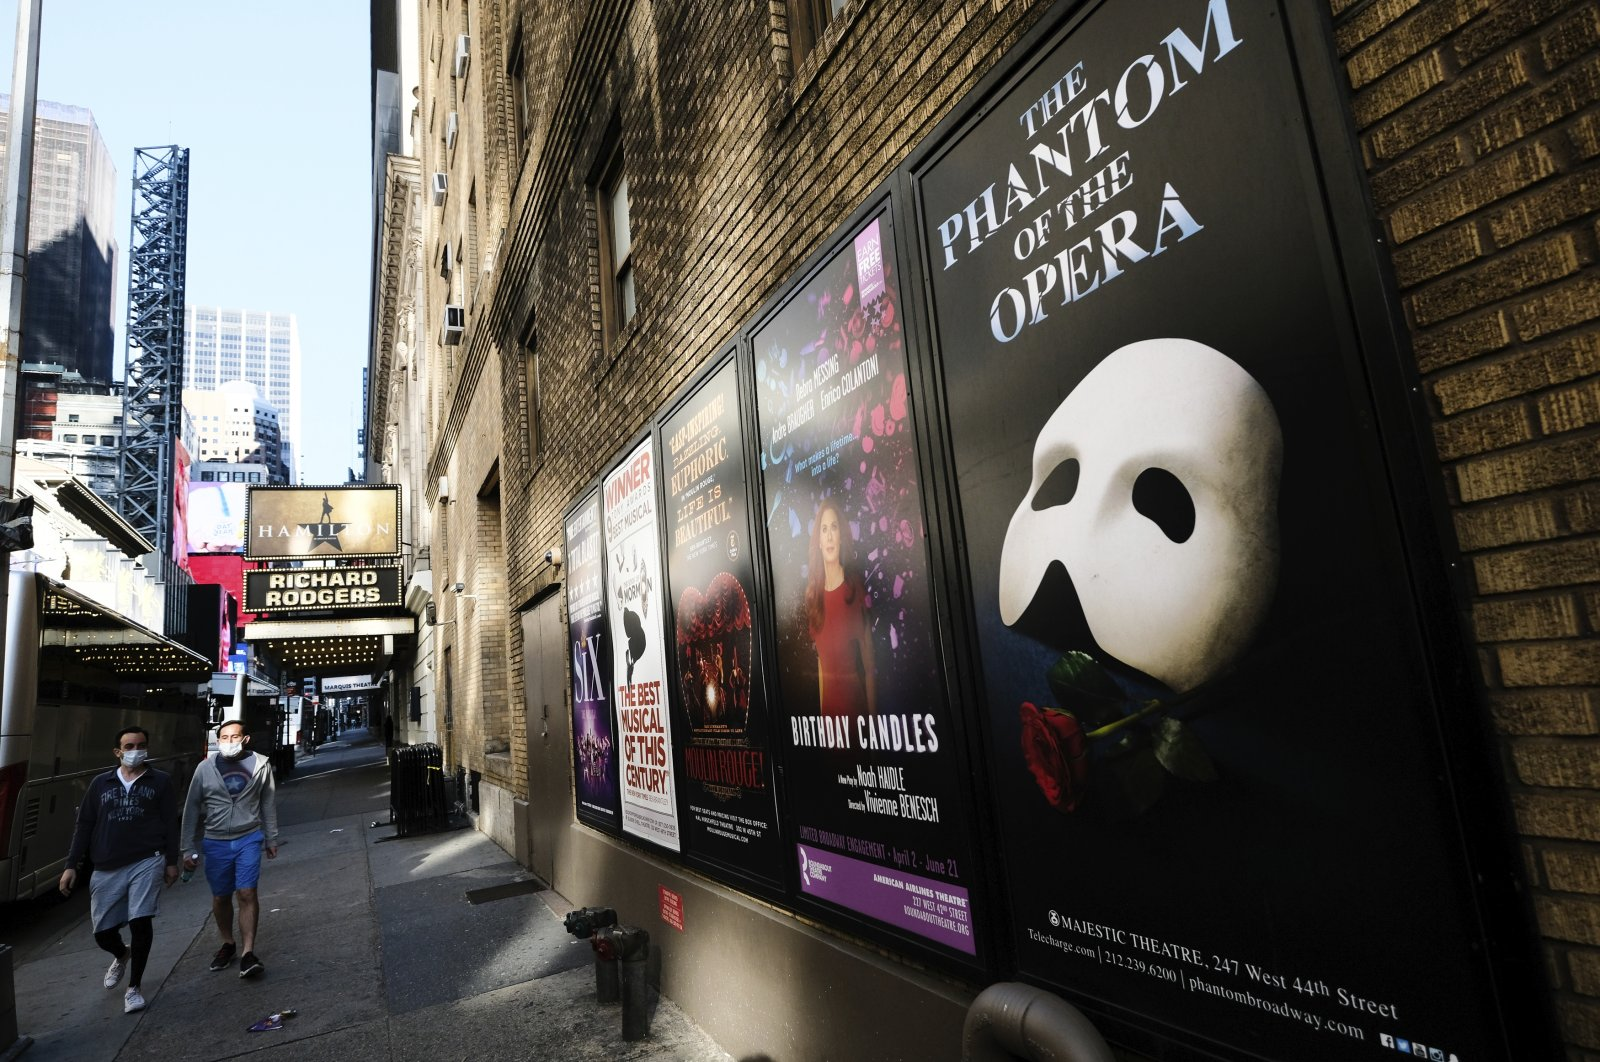 Broadway posters appear outside the Richard Rodgers Theatre during COVID-19 lockdown in New York, U.S., May 13, 2020. (AP Photo)